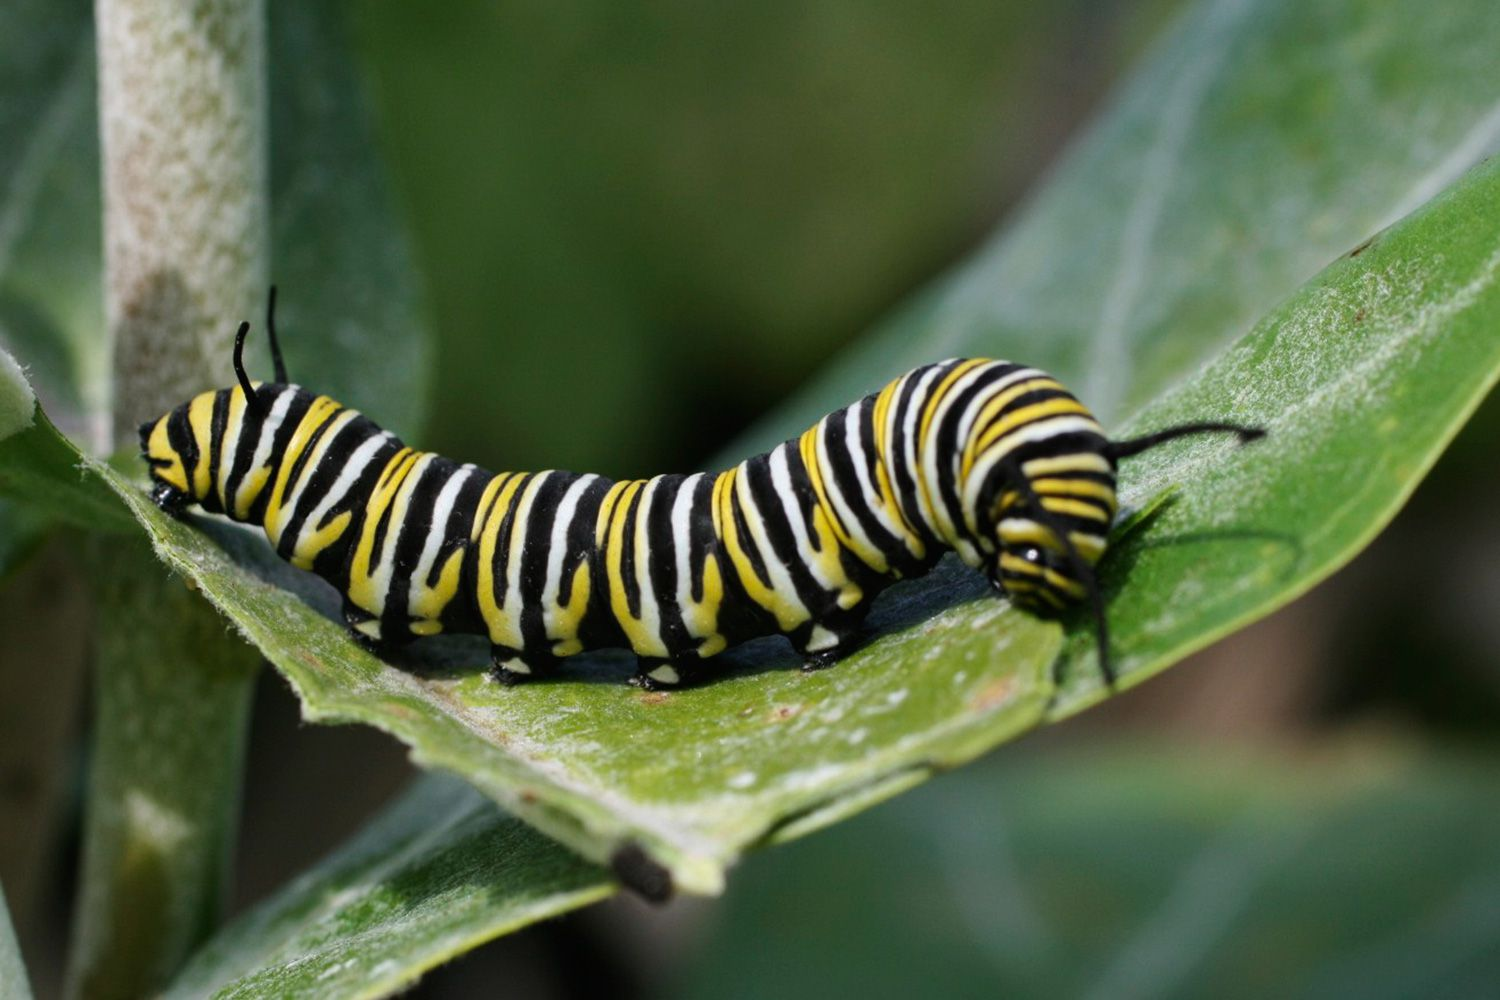 10 Fascinating Facts About Caterpillars